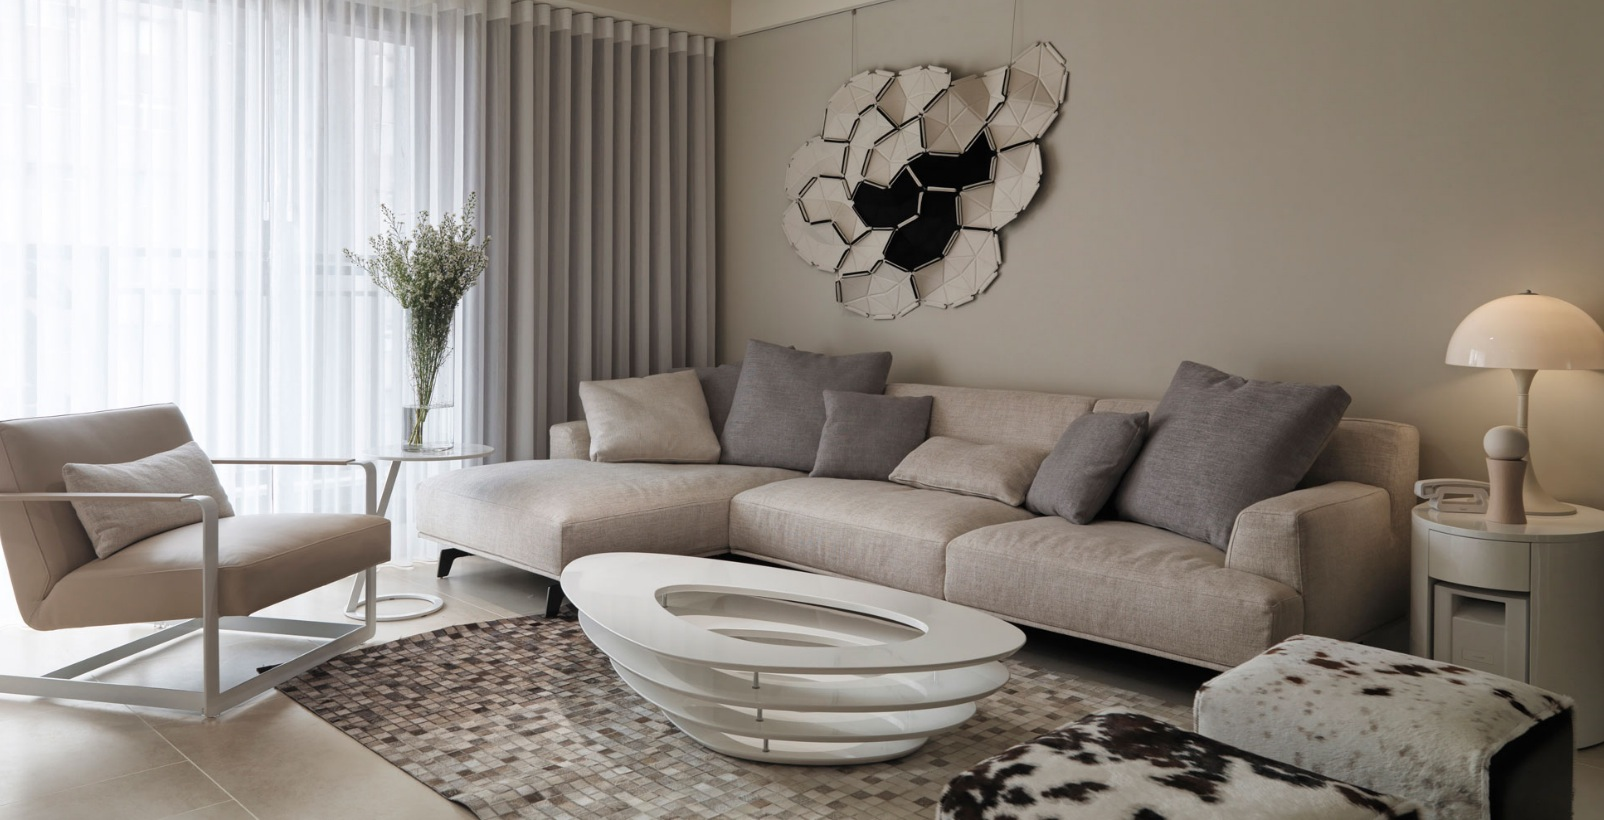 Neutral contemporary living room interior design ideas for Living room neutral ideas